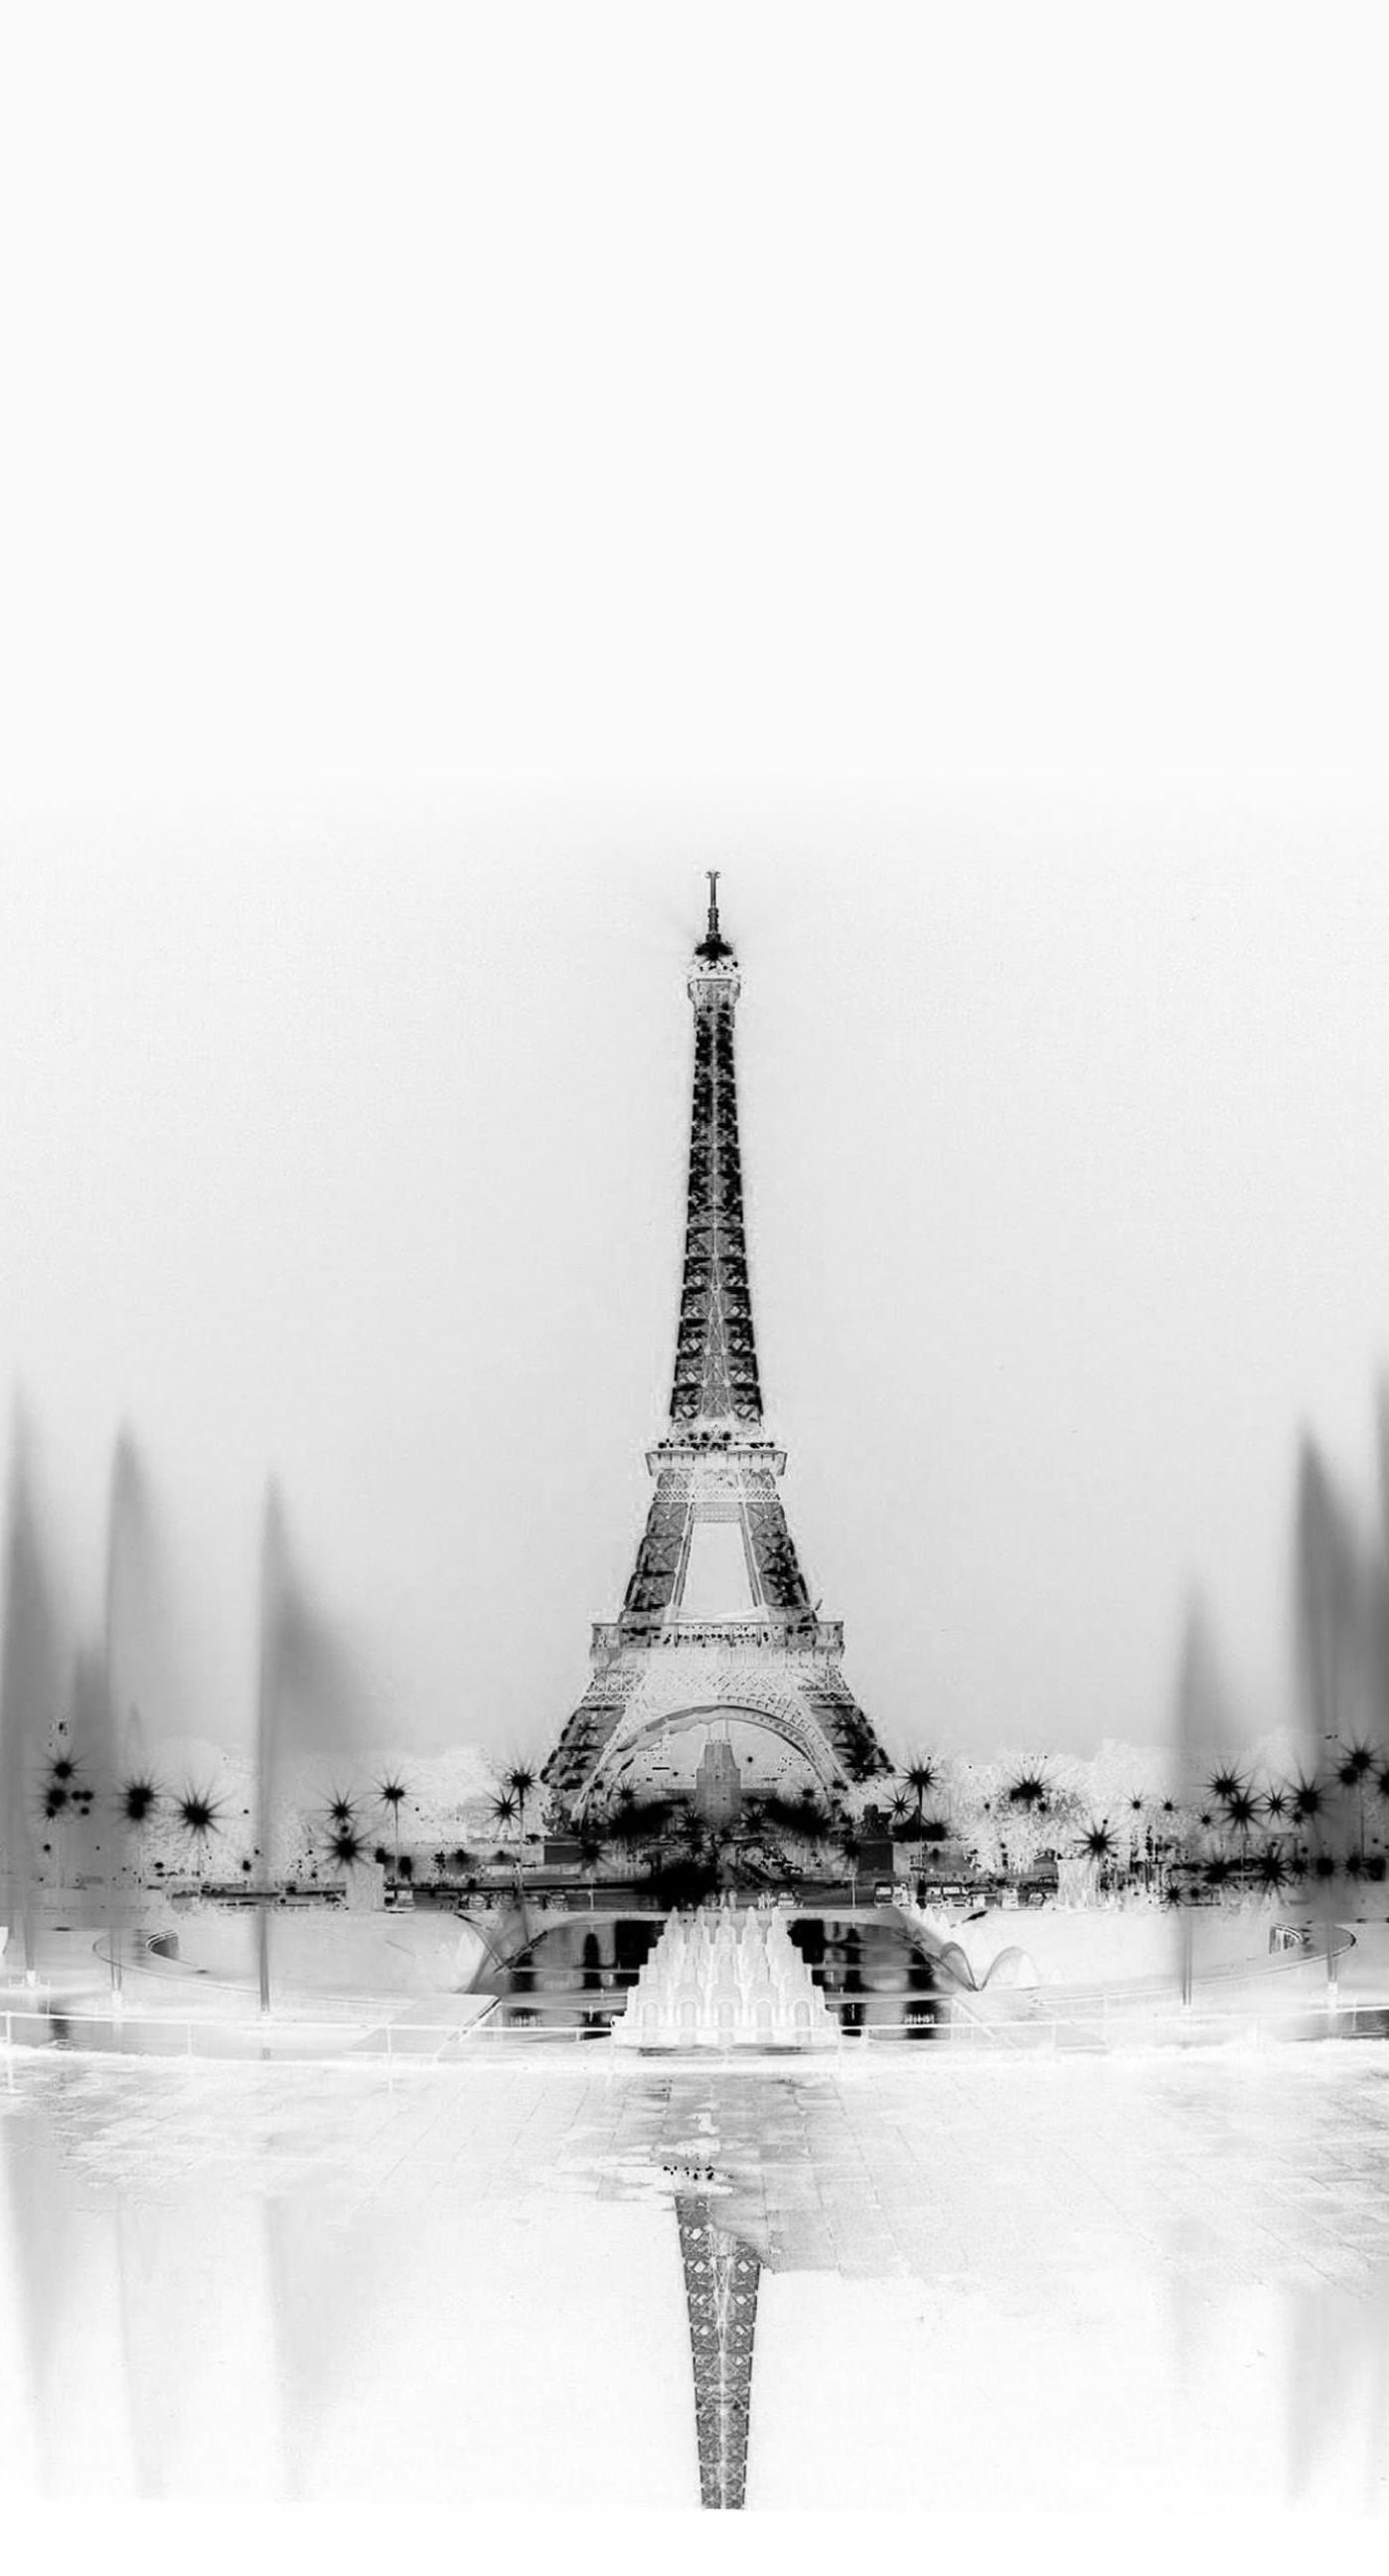 Monochrome Landscape Eiffel Tower Wallpaper Sc Iphone6splus